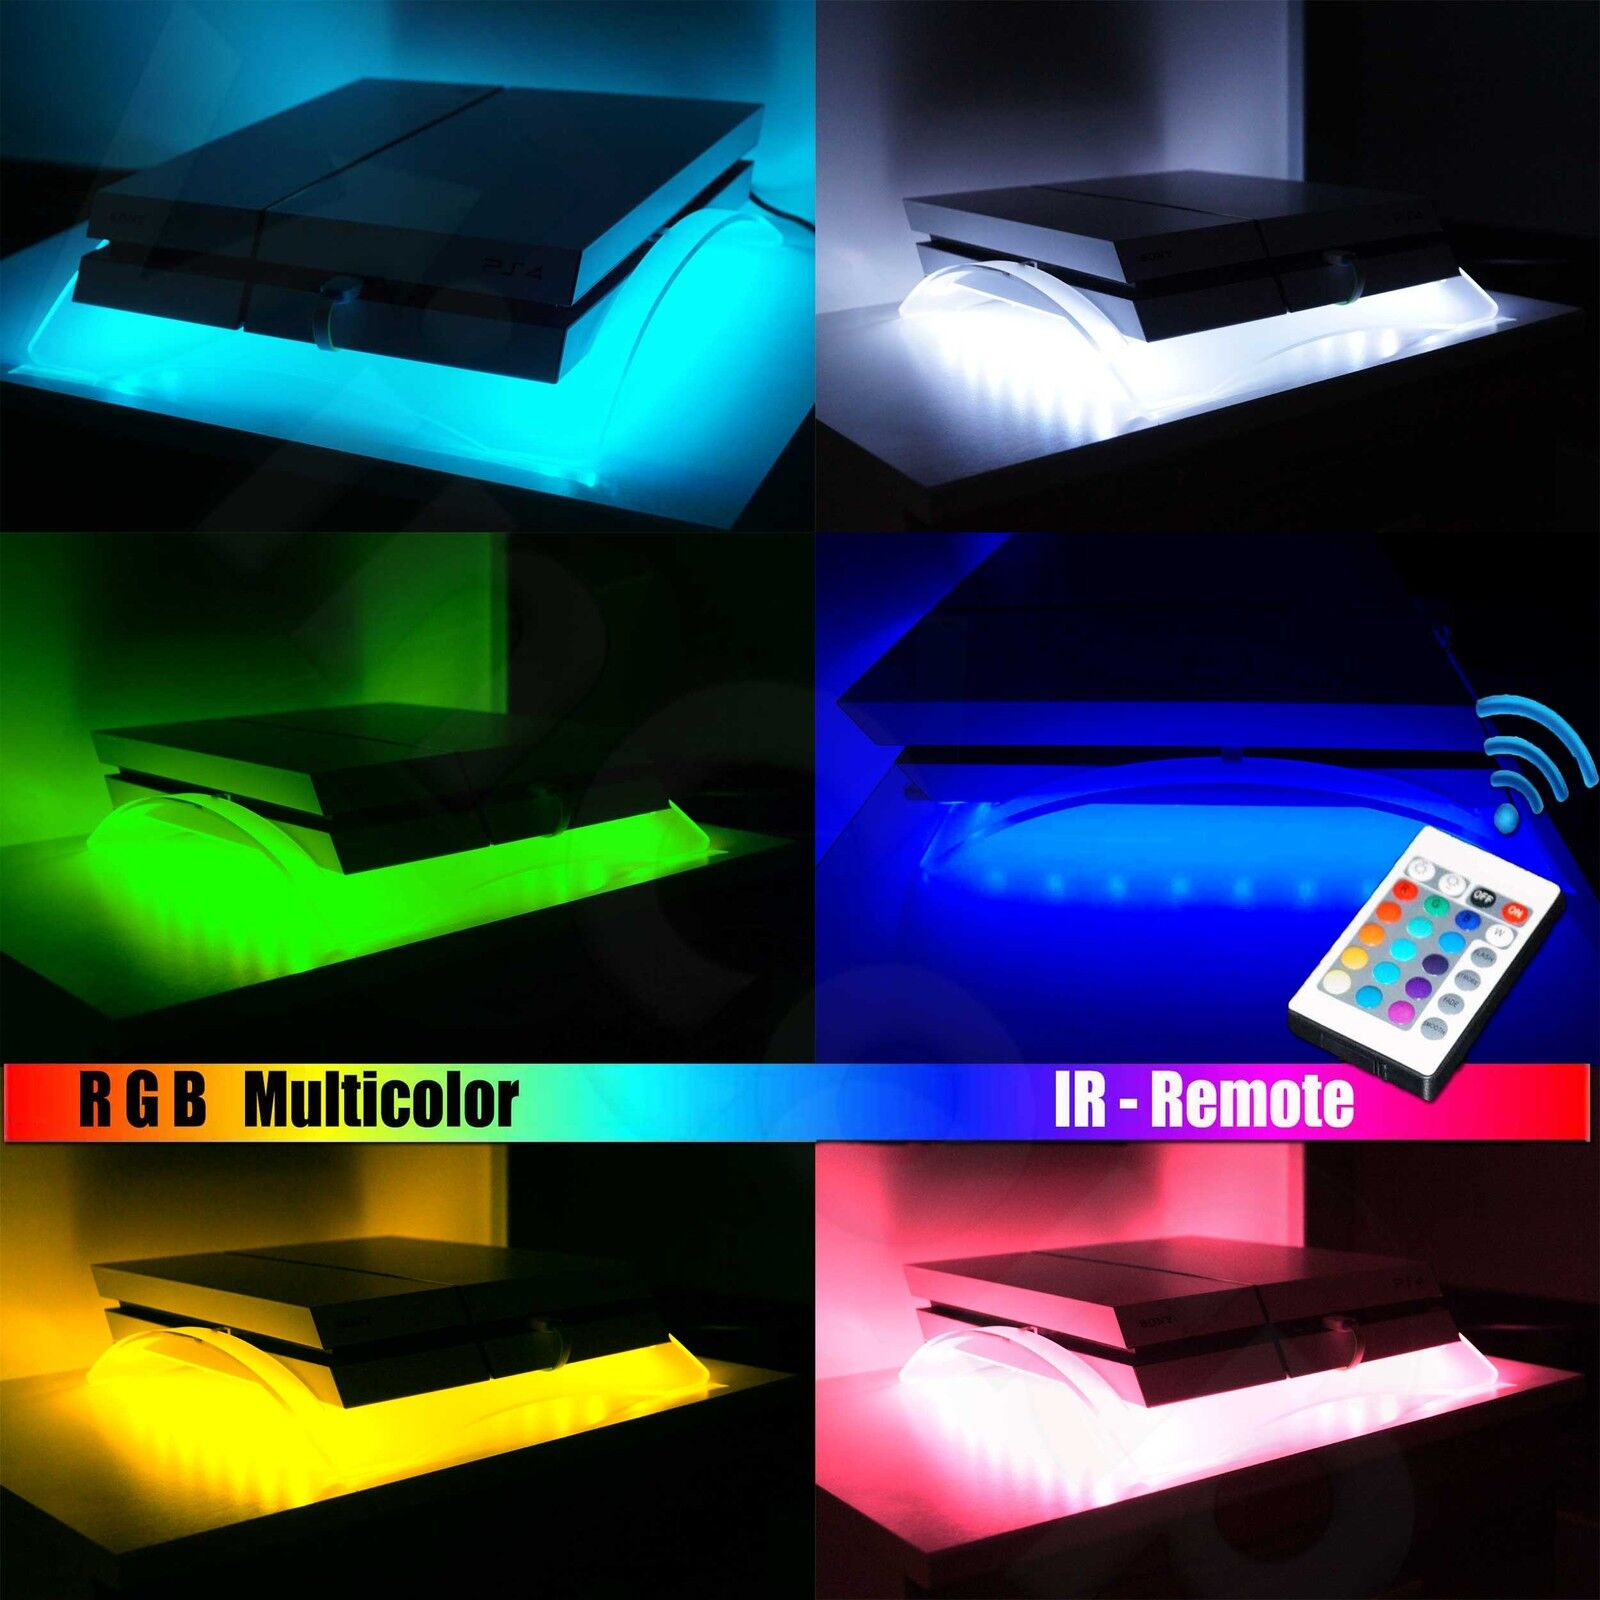 acrylglas design plexiglas st nder halter ps4 playstation 4 rgb beleuchtet led ebay. Black Bedroom Furniture Sets. Home Design Ideas